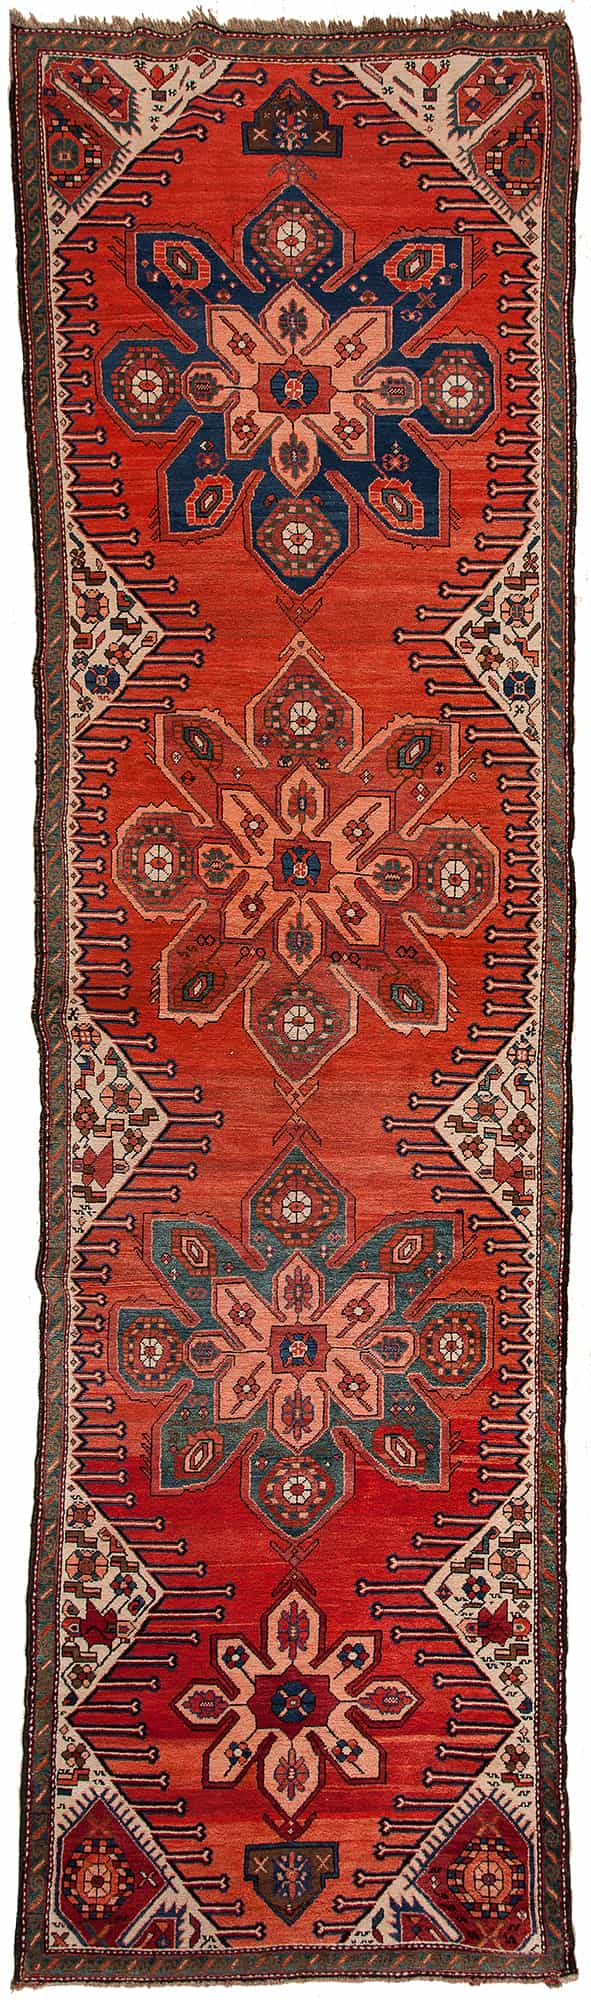 Antique Karabakh Runner Runner at Essie Carpets, Mayfair London